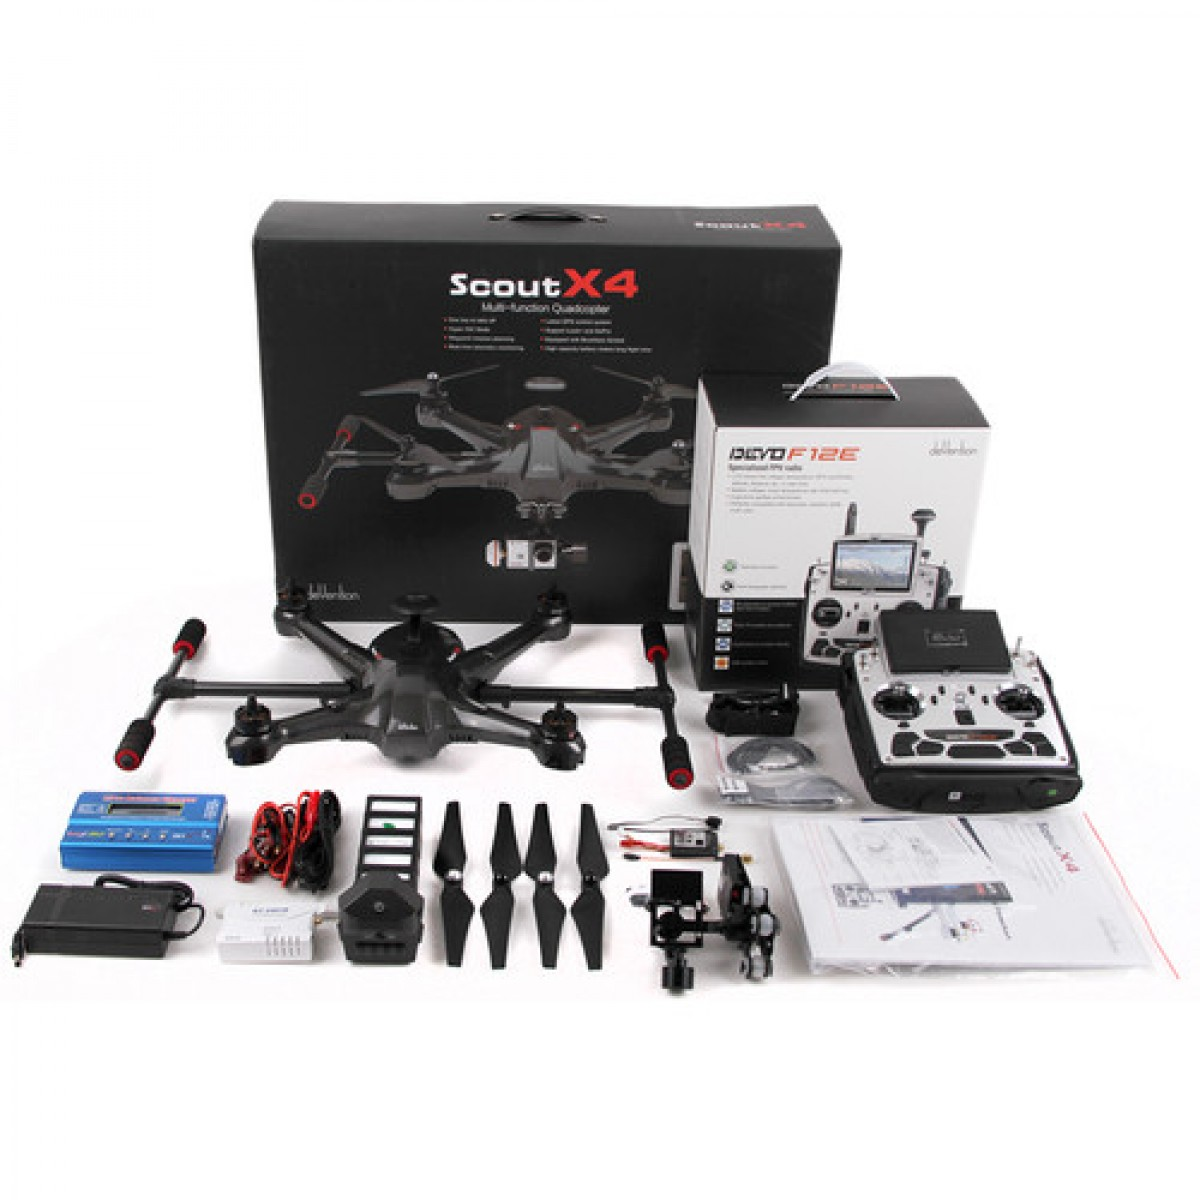 Walkera Scout X4 Quadcopter with G-3D Gimbal